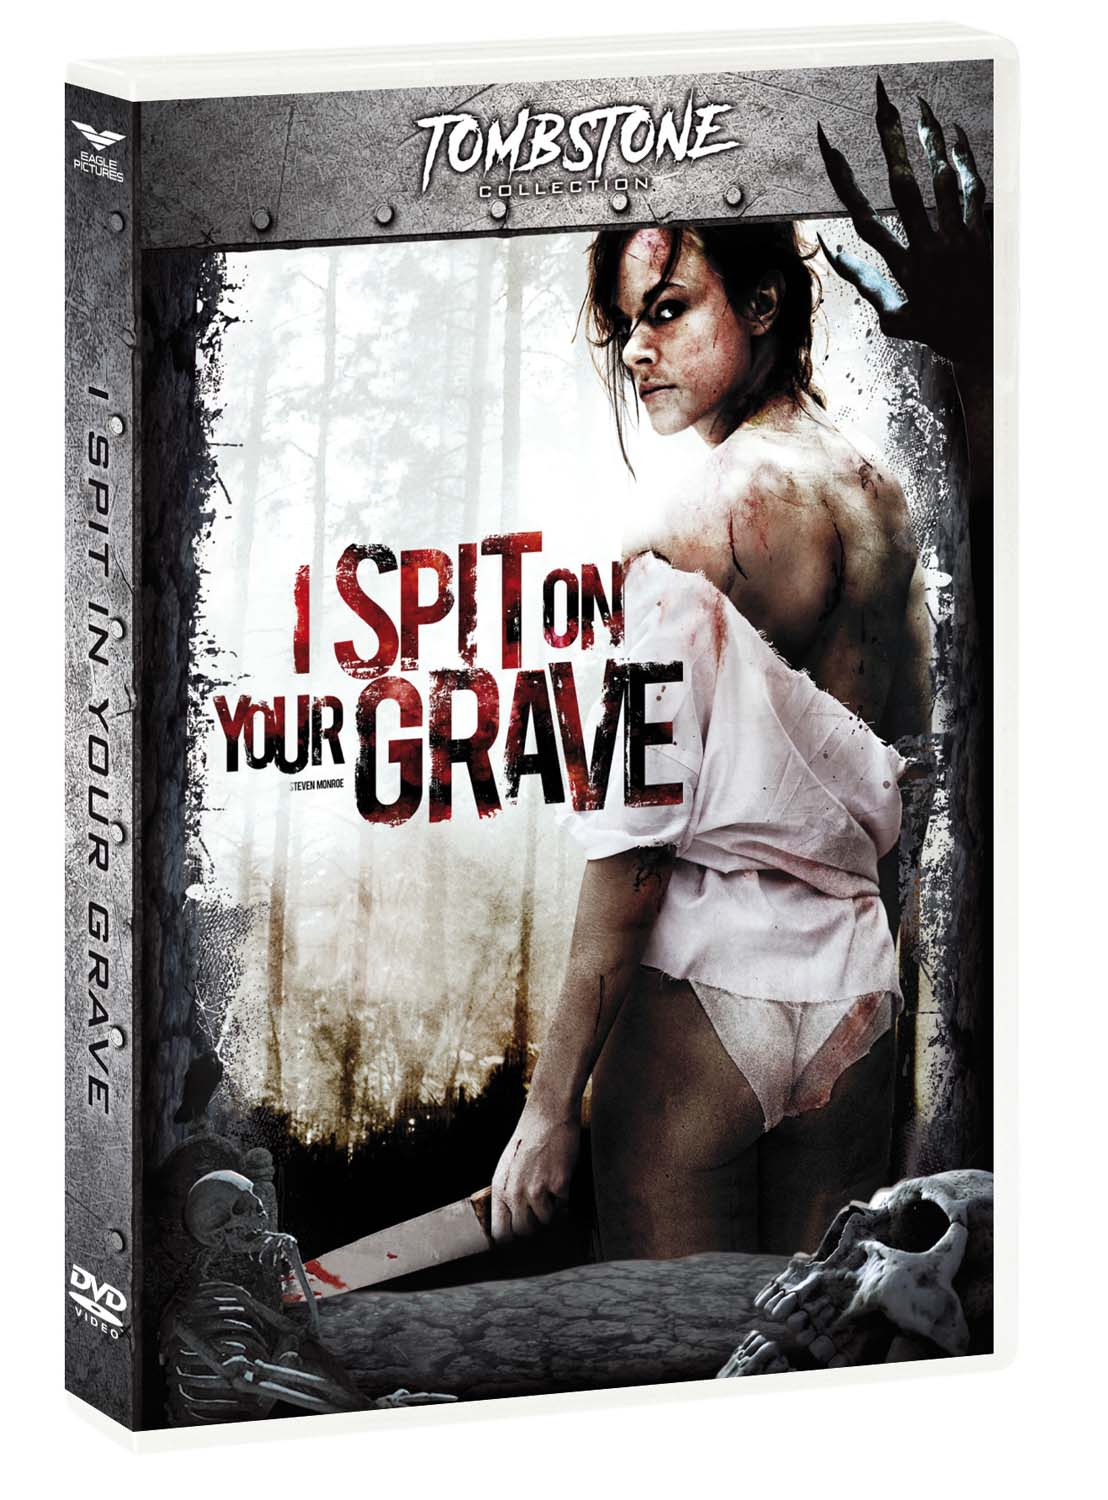 I SPIT ON YOUR GRAVE (TOMBSTONE) - RMX (DVD)